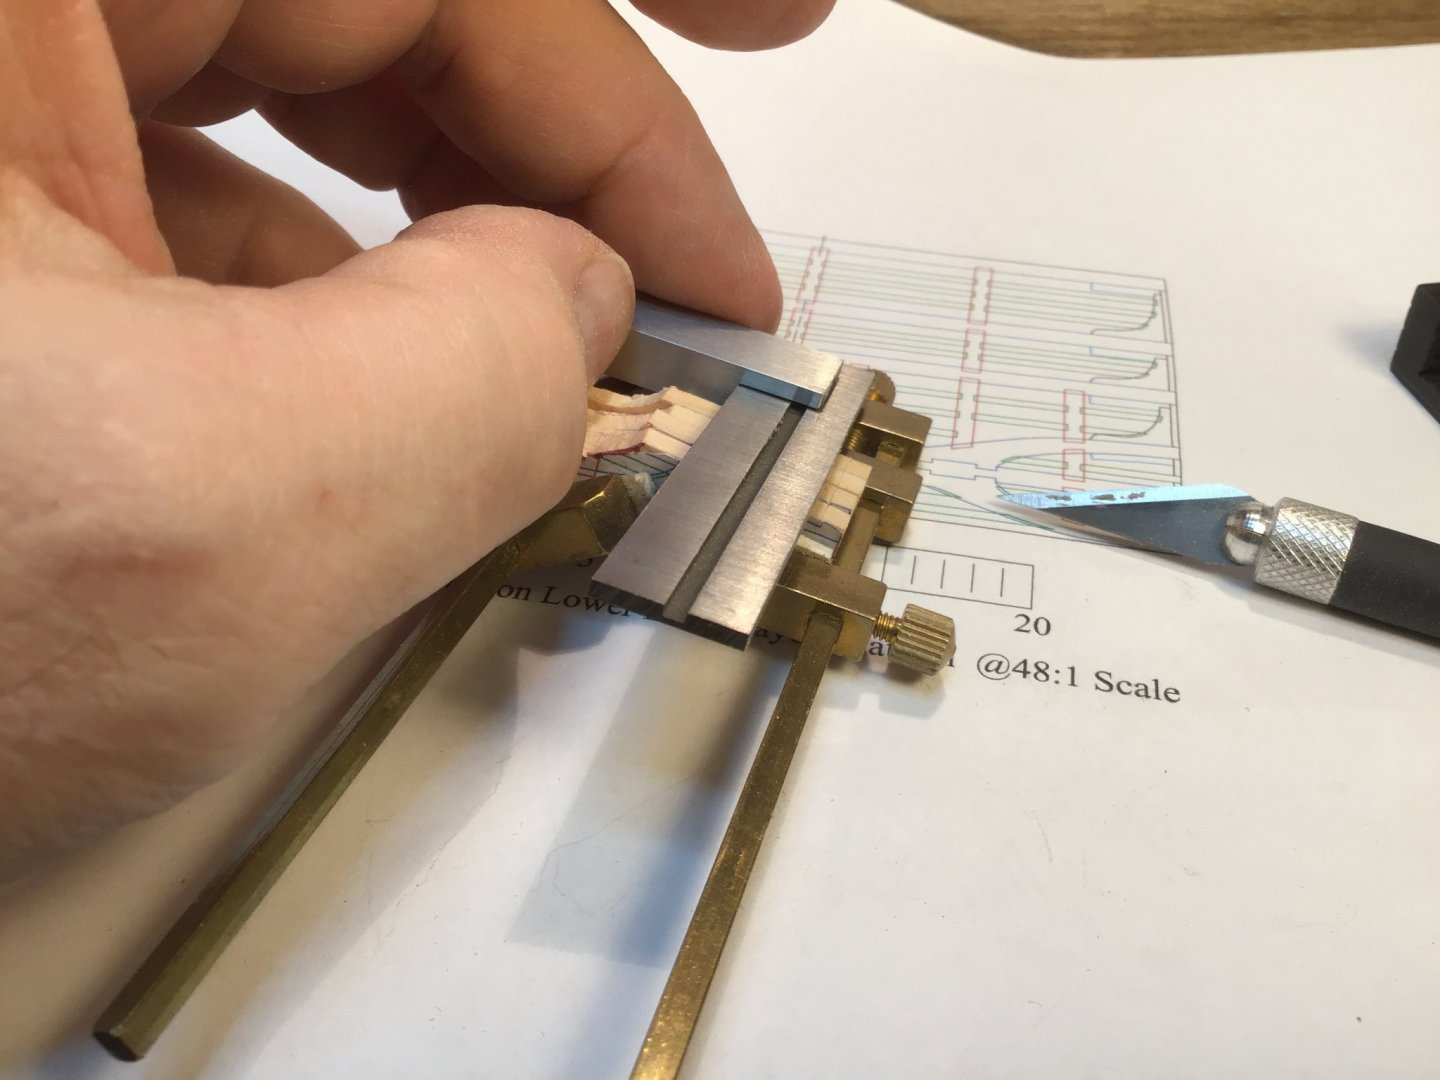 Using a square and knife to mark the notches.